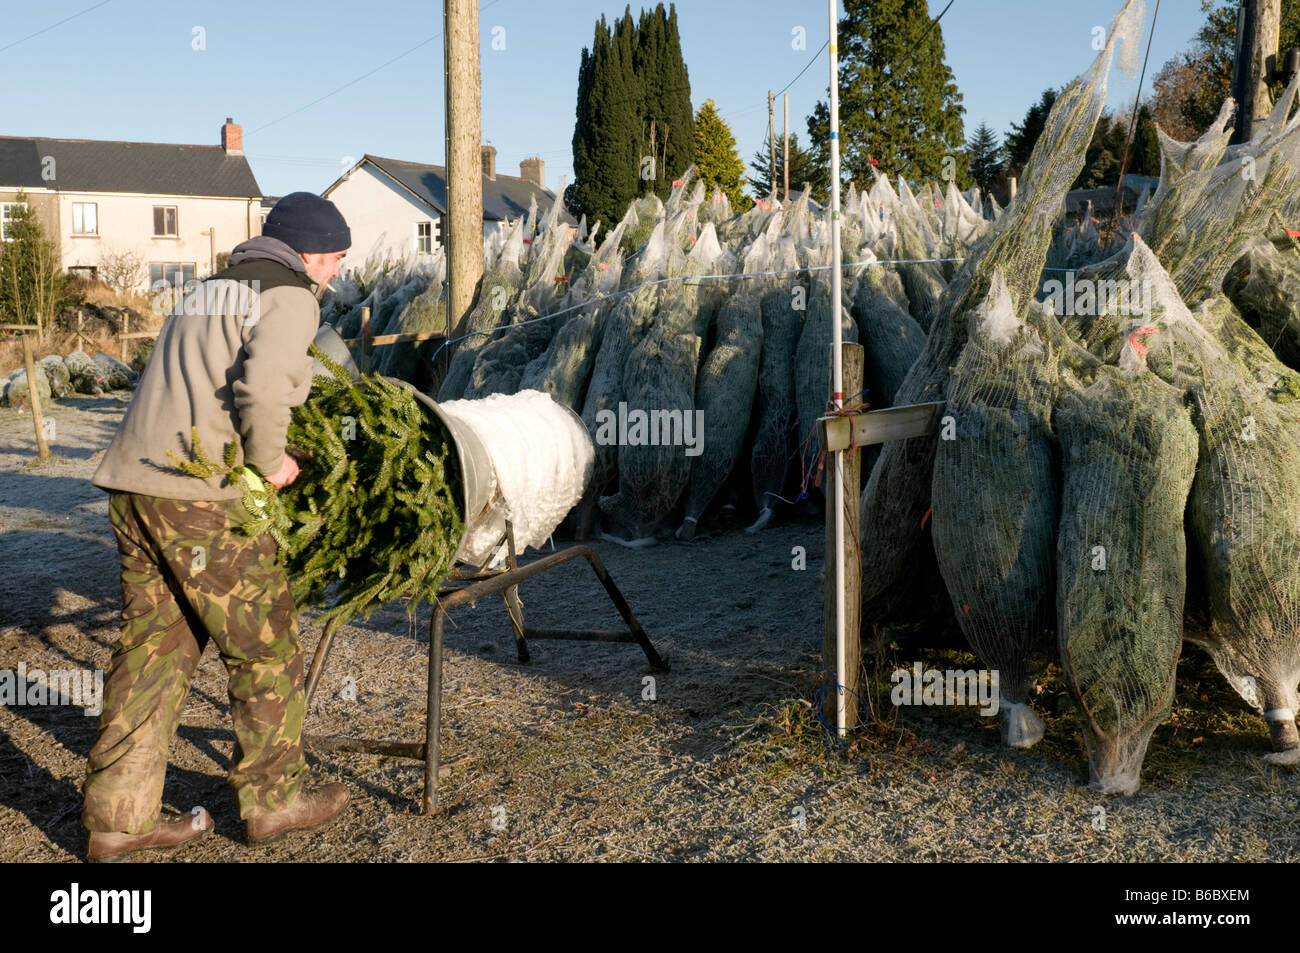 Christmas Trees On Sale Man Wrapping A Tree In Plastic Netting  Pontrhydygroes Ceredigion Mid Wales UK